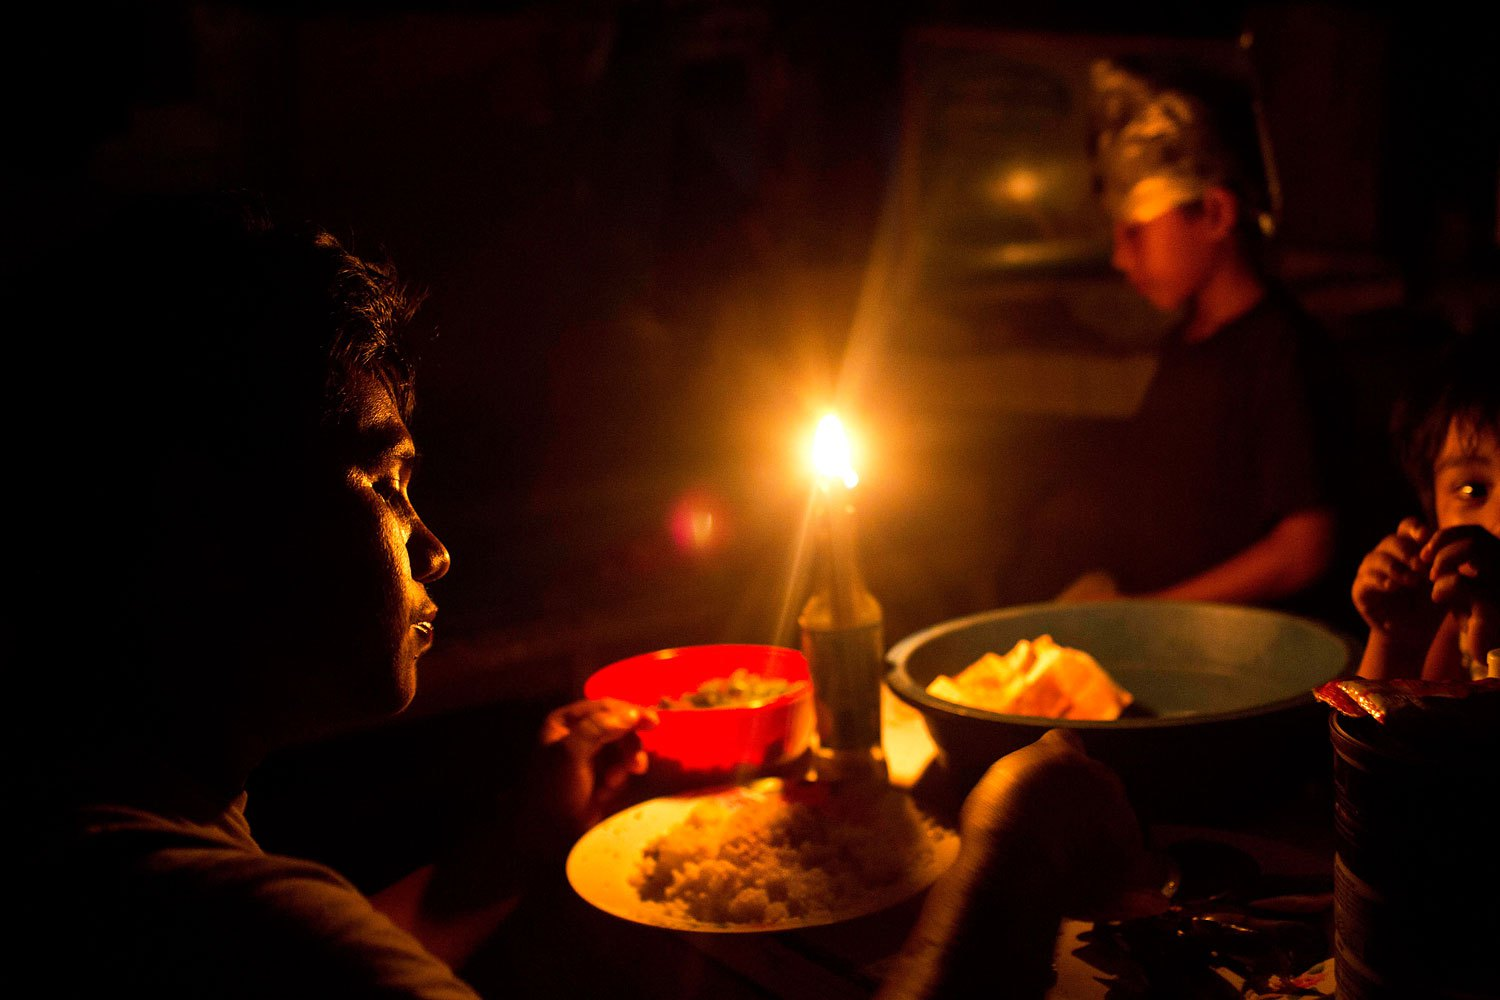 A Typhoon Haiyan survivor and his sons eat dinner by candlelight inside a destroyed and abandoned vegetable market now used as a shelter in Tacloban, Philippines, November 20, 2013.